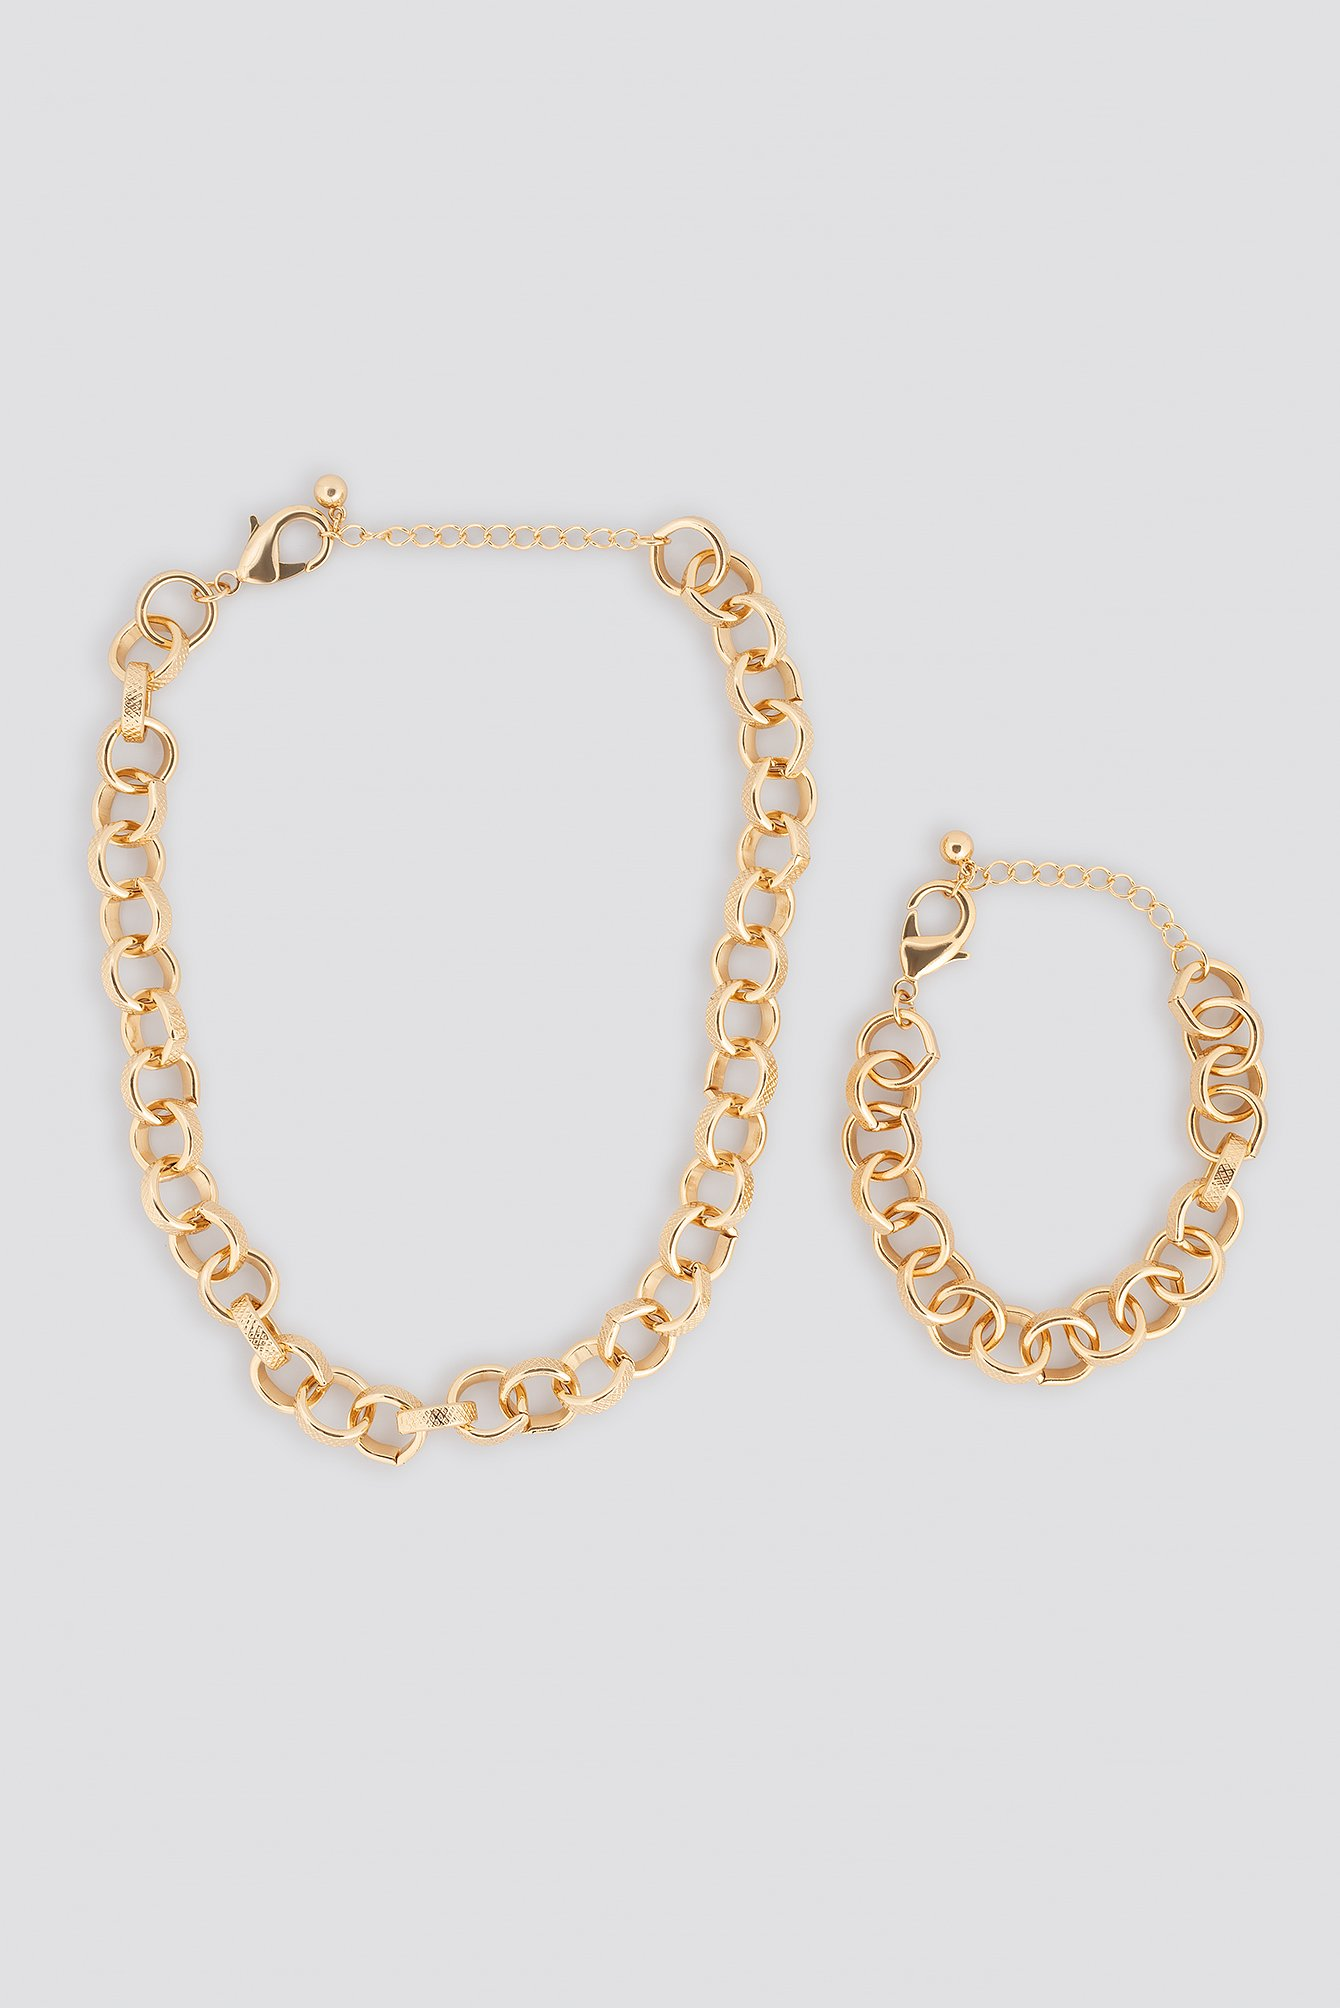 na-kd accessories -  Chain Necklace and Bracelet Set - Gold